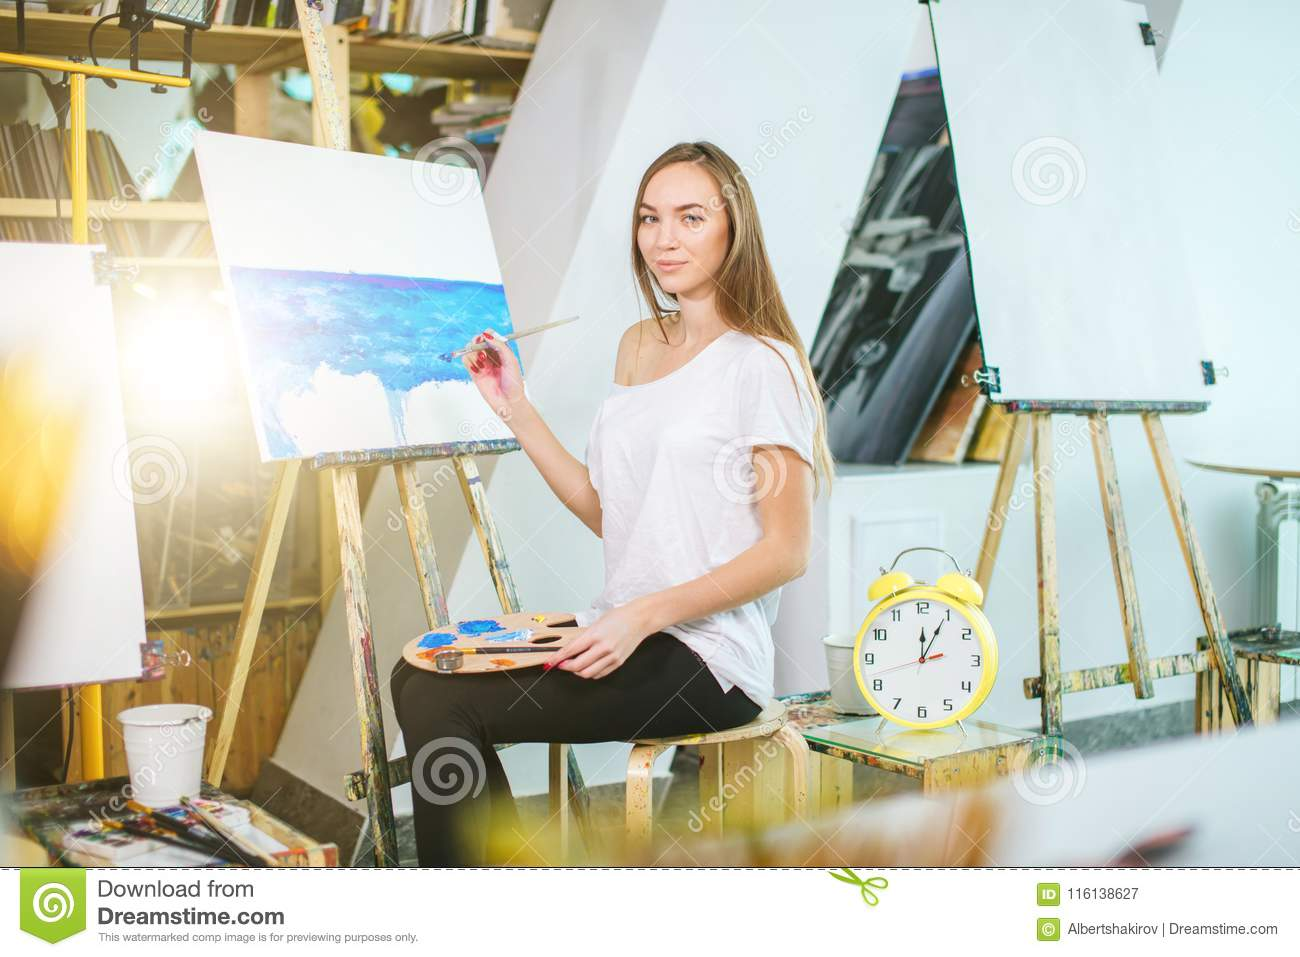 Woman Artist Painting A Picture On Easel With Oil Paints In